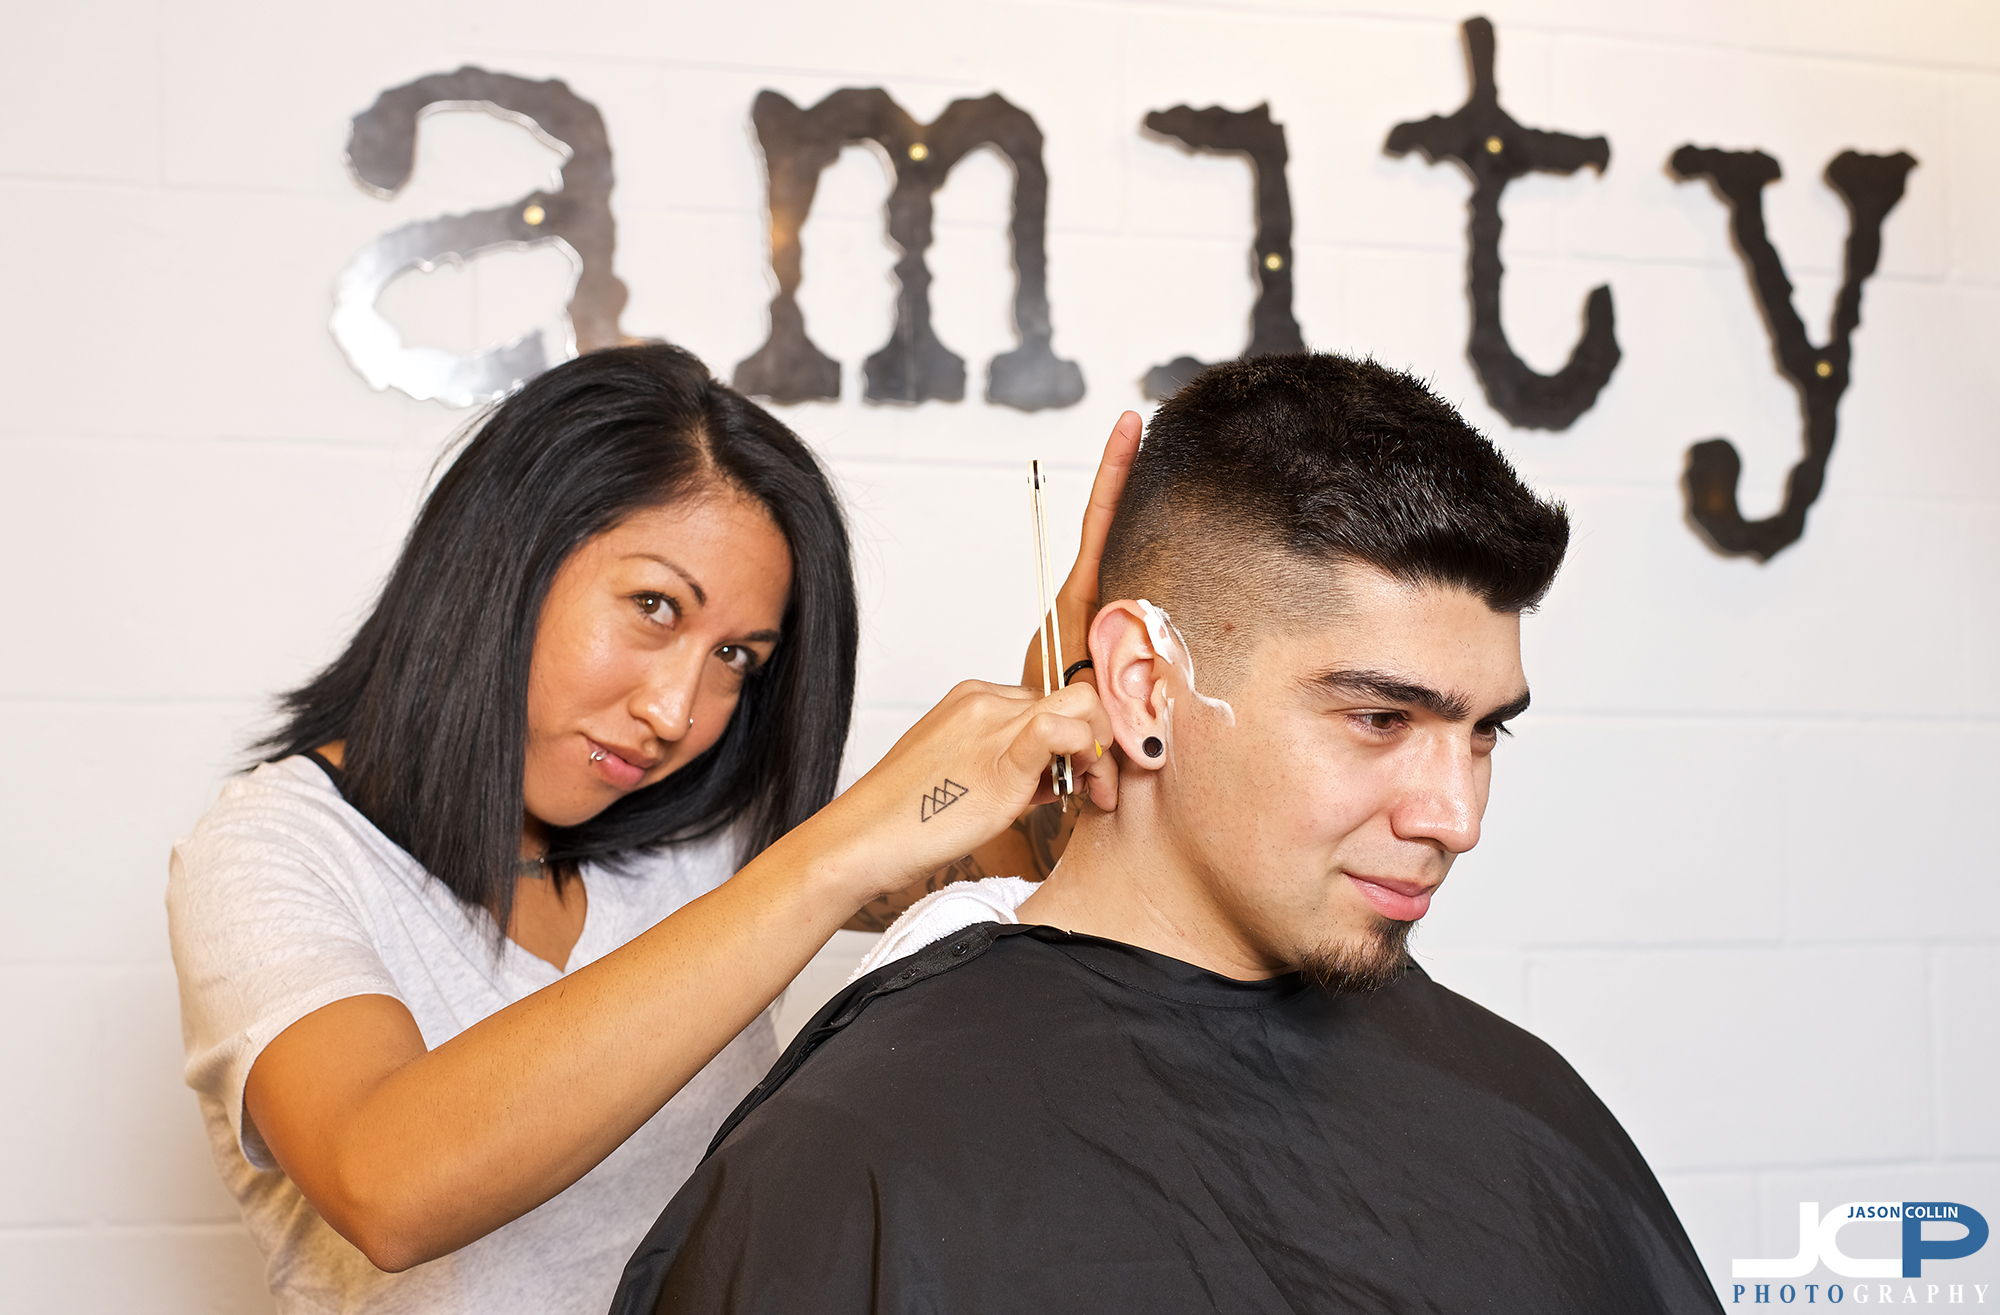 Felicia of Amity. A Hair Place gives a customer a shave at her hair salon in the Nob Hill area of Albuquerque, New Mexico